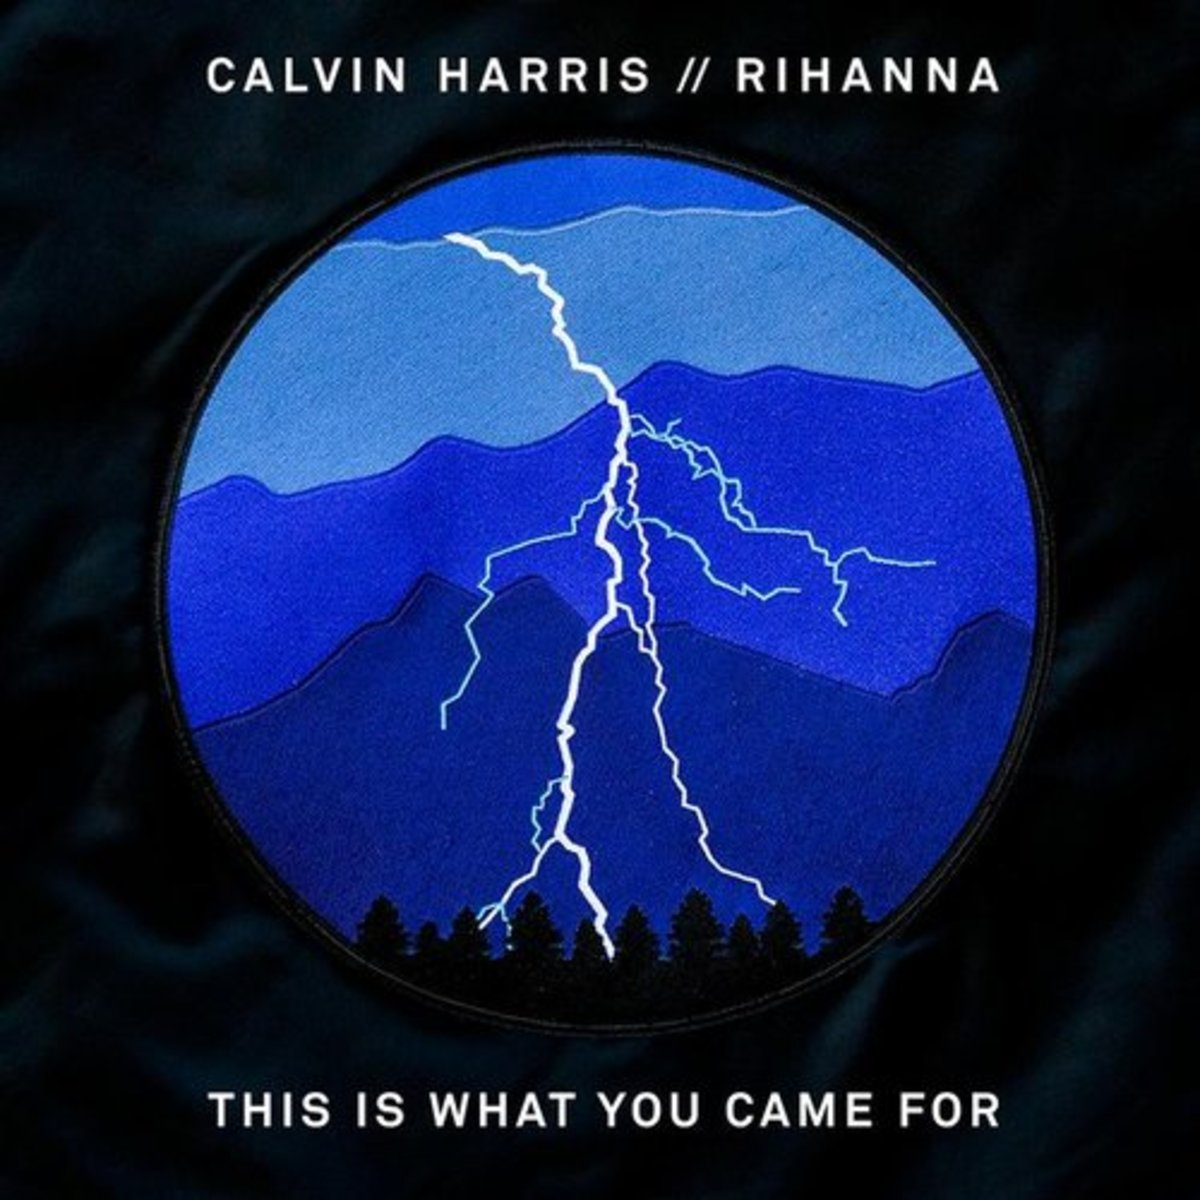 calvin-harris-this-is-what-you-came-for.jpg